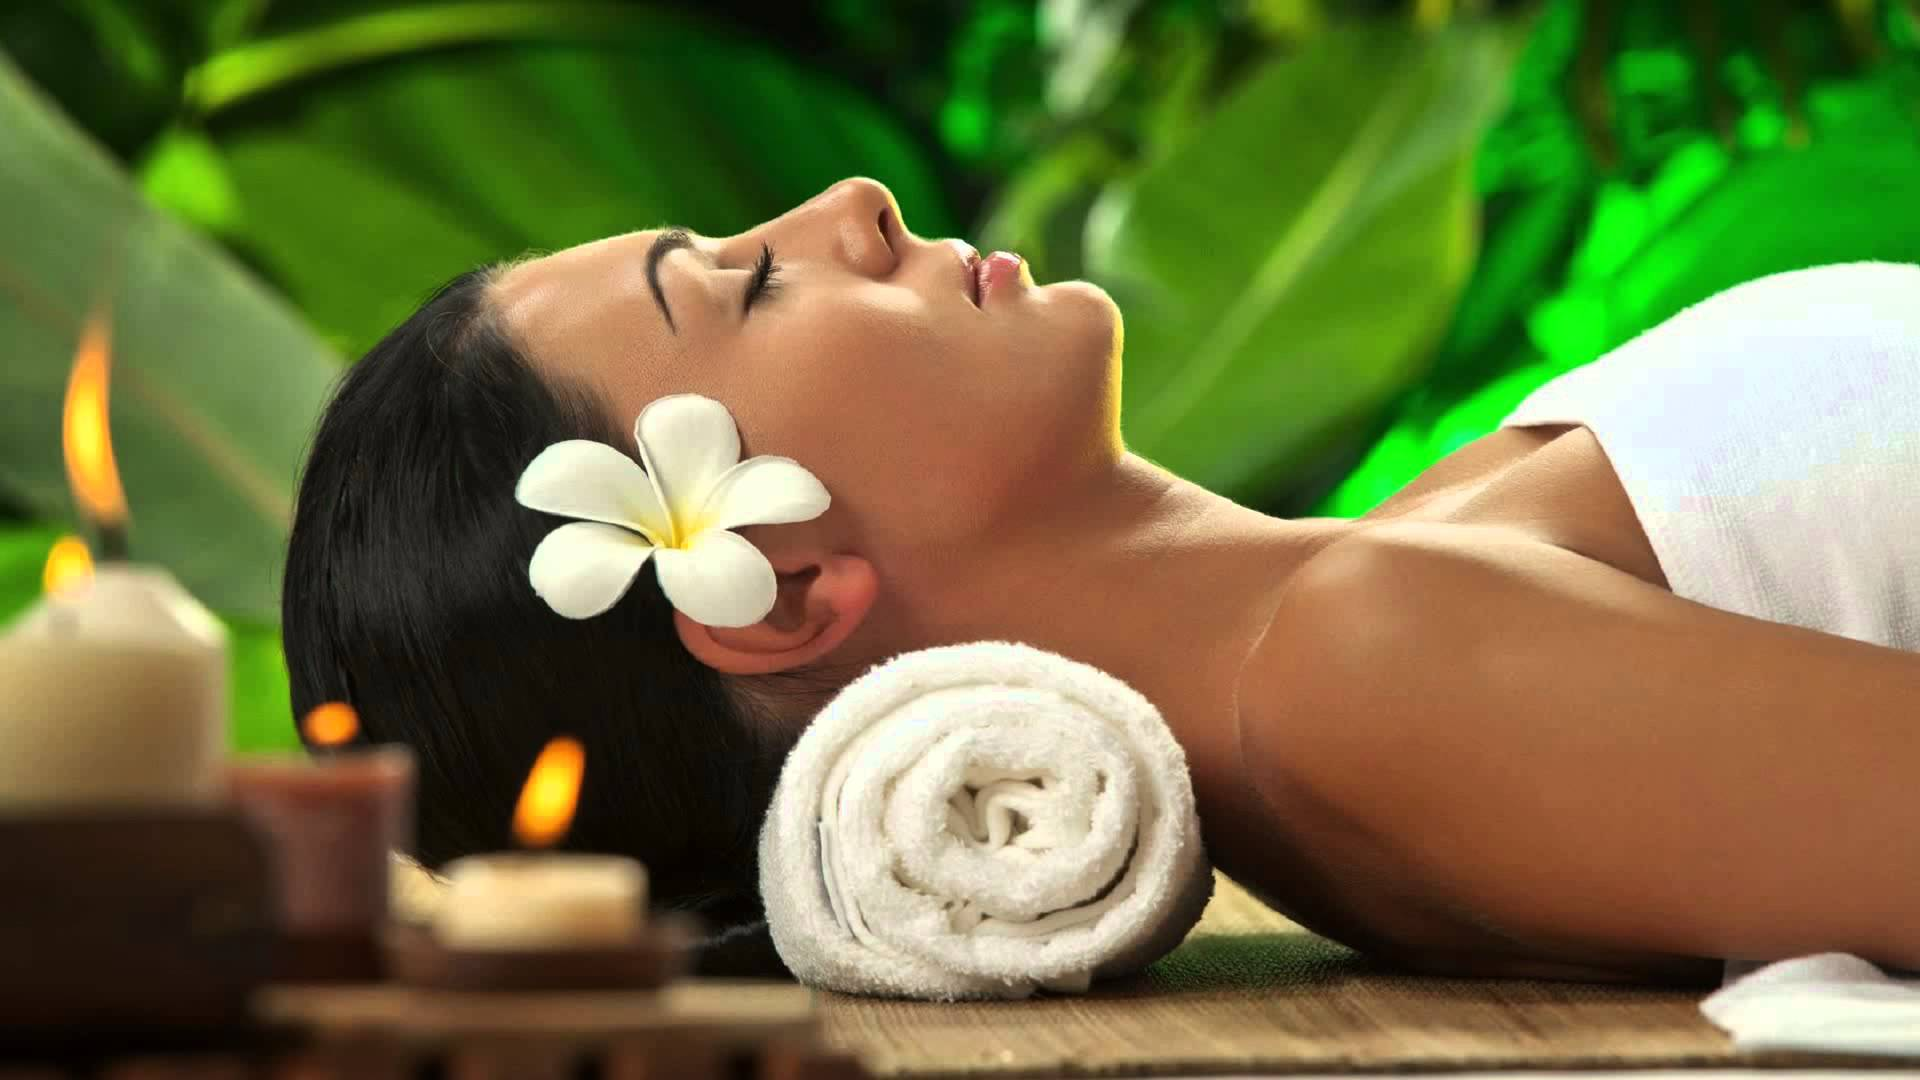 Relaxing with Massages and Meditation